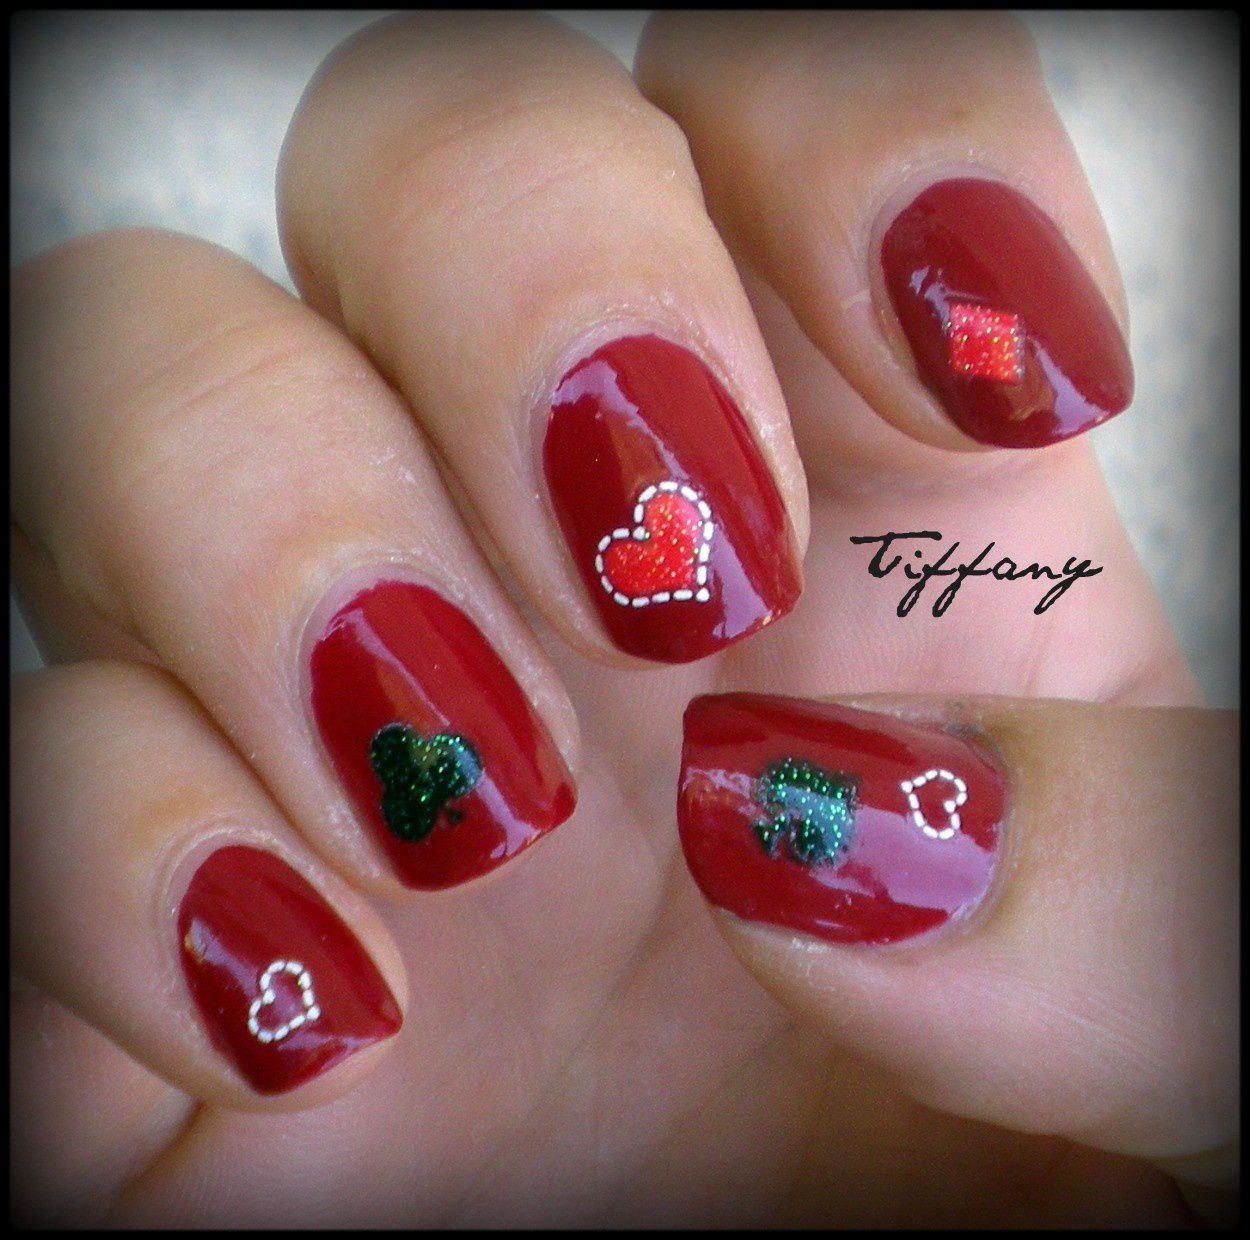 ongles 12.08.11 (2)